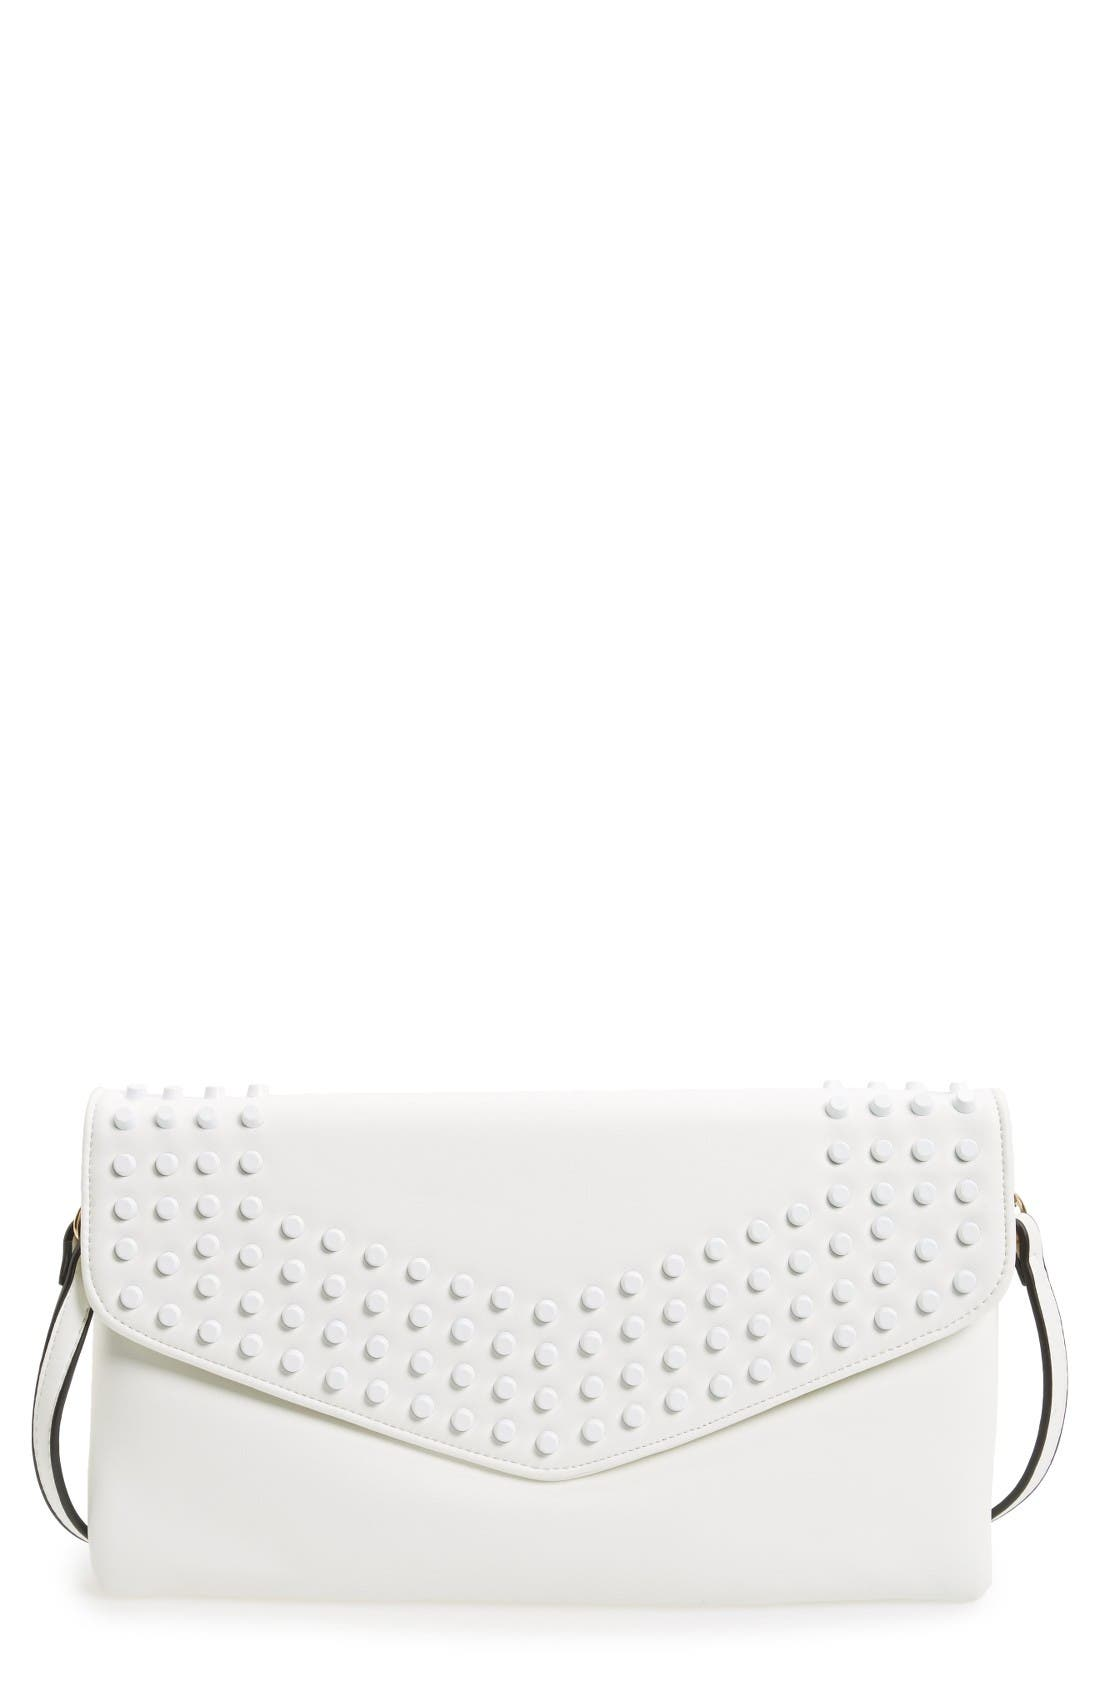 Alternate Image 1 Selected - Sondra Roberts Studded Faux Leather Envelope Clutch